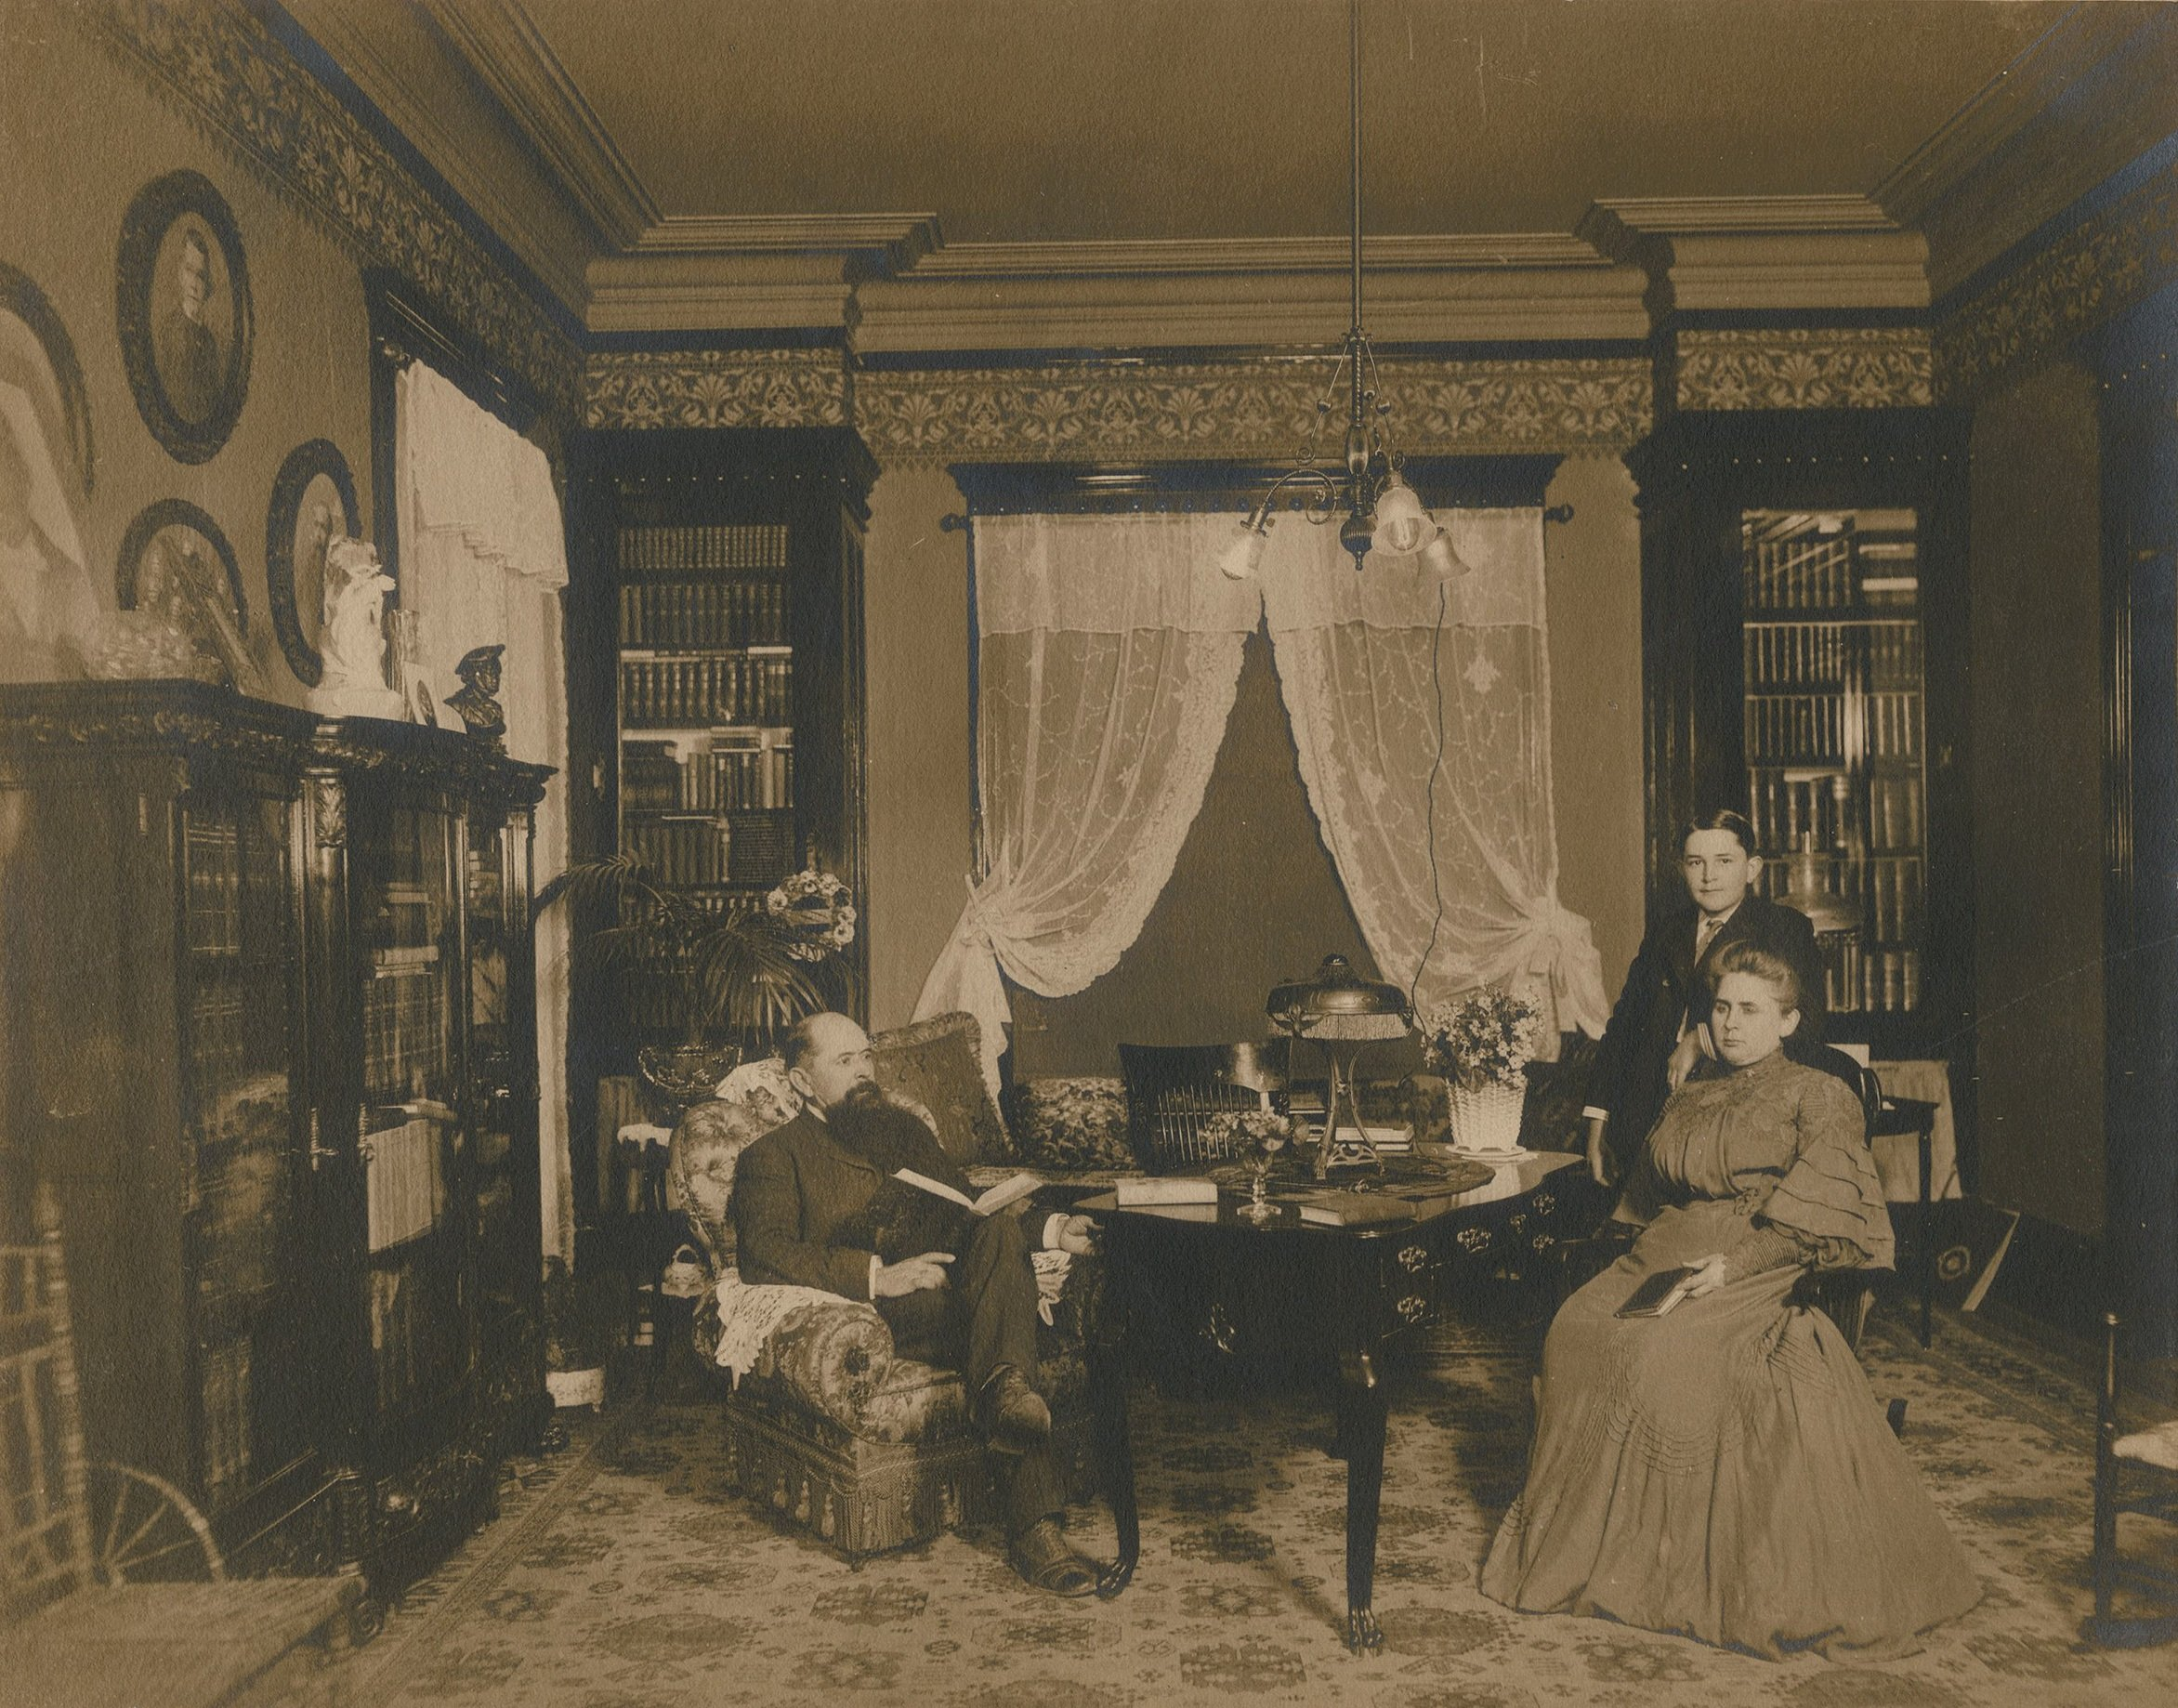 The Stark family, W.H., Miriam, and H.J. Lutcher Stark posing in their library c.1900.